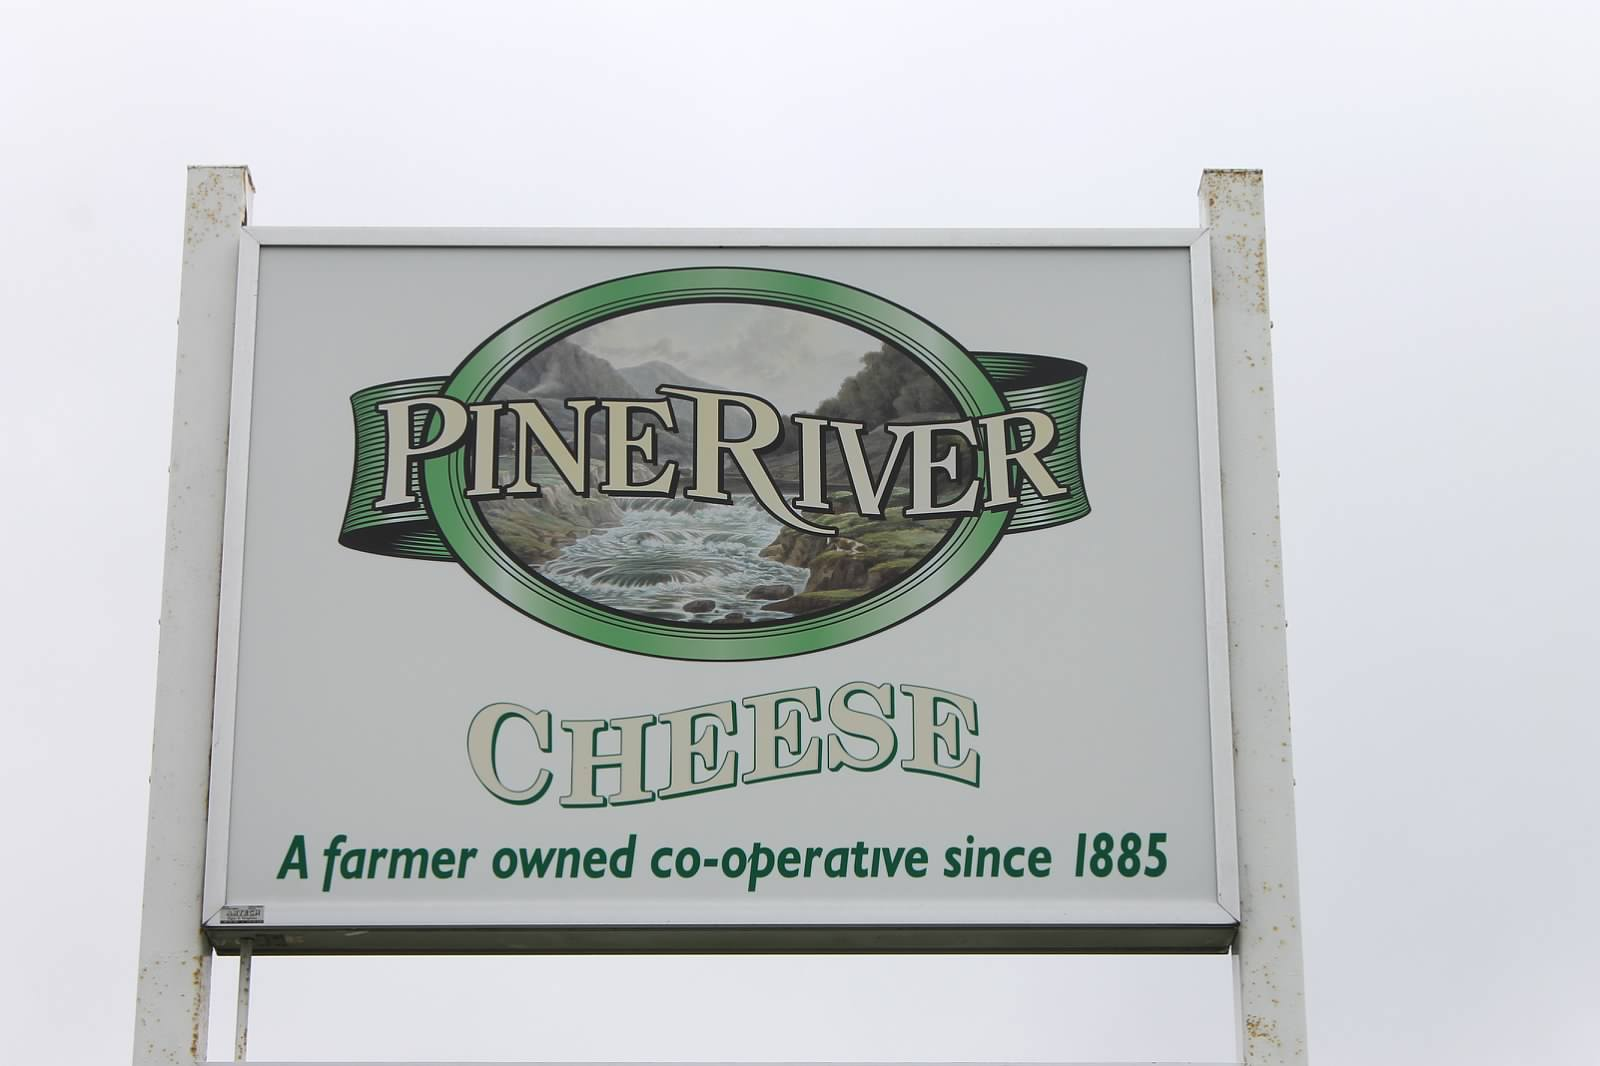 Pine River Cheese Road Sign